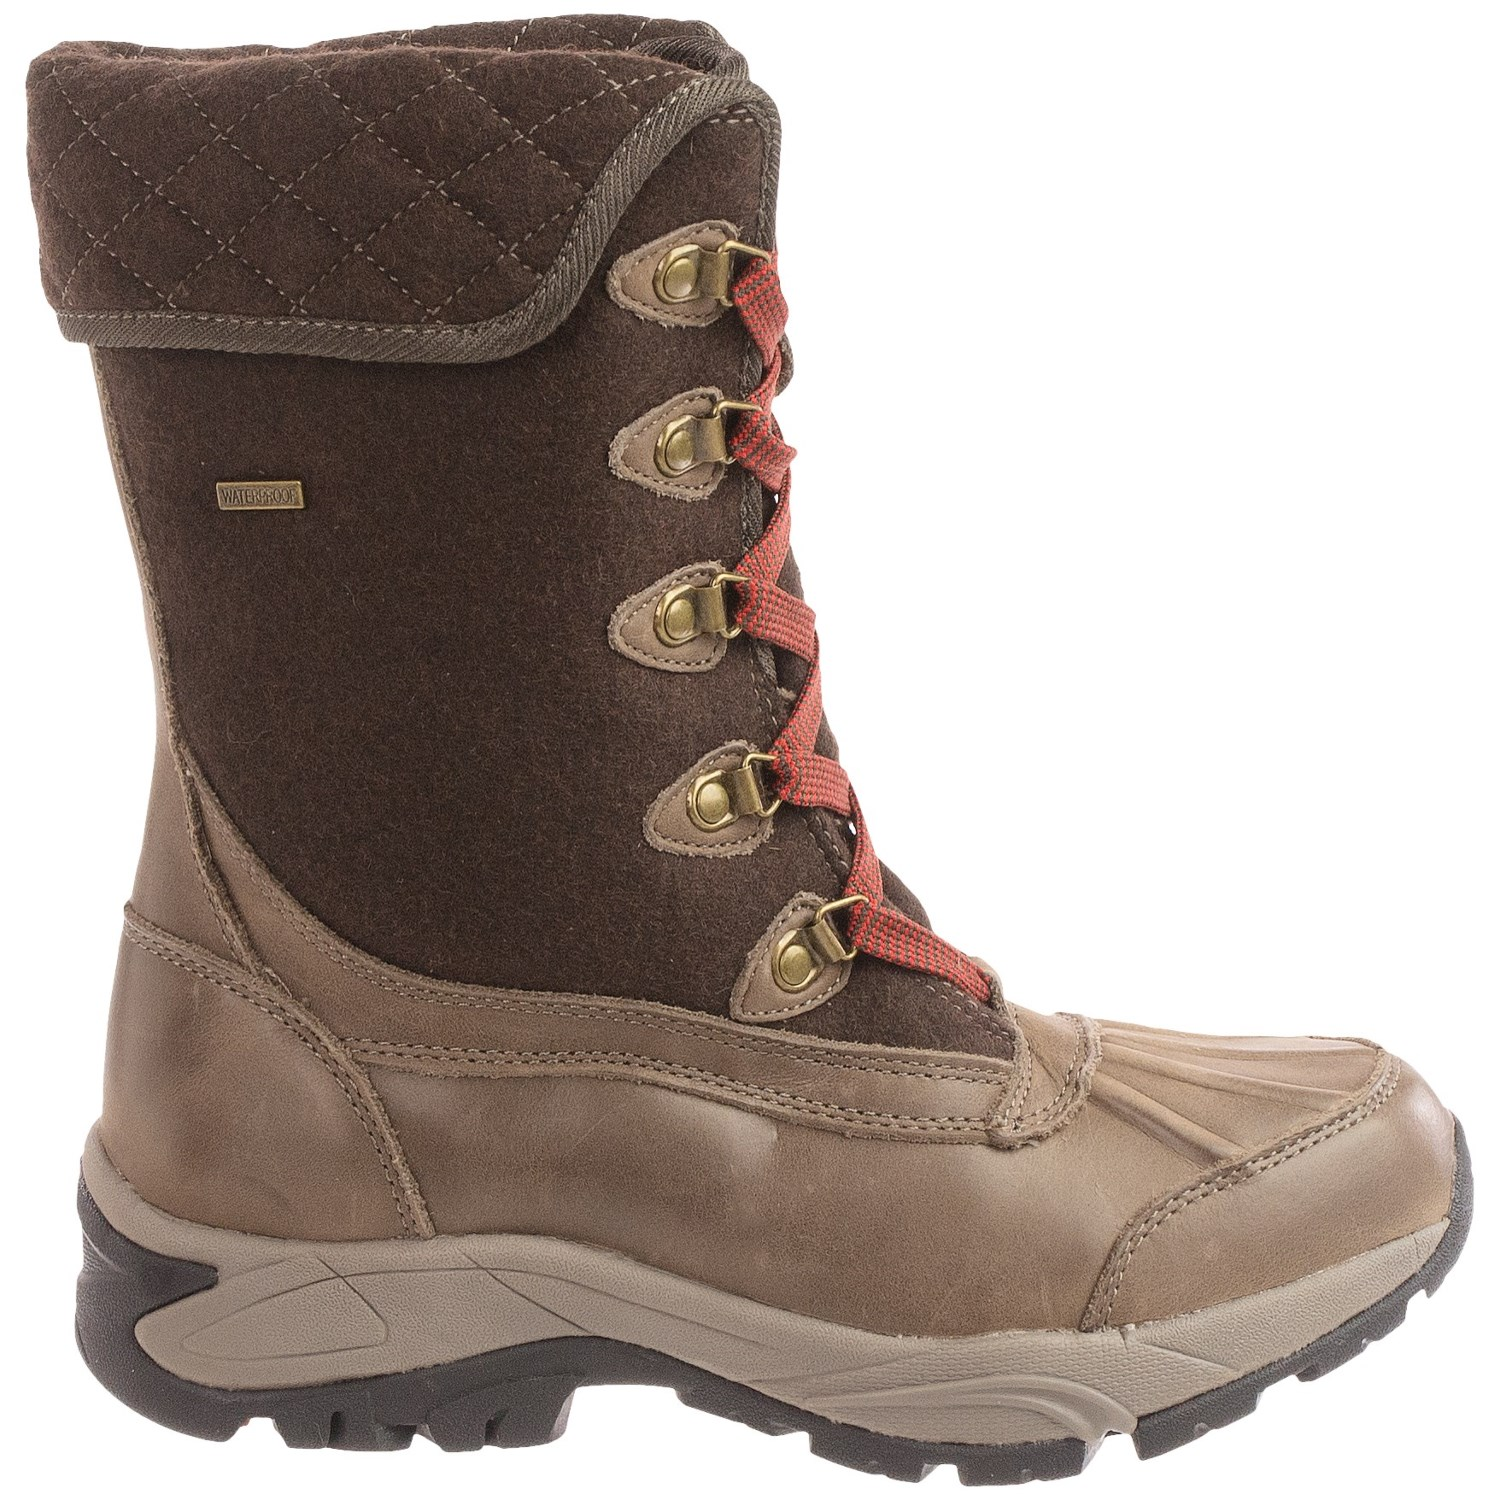 kodiak women Find kodiak boots for women at shopstyle shop the latest collection of kodiak boots for women from the most popular stores - all in one place.